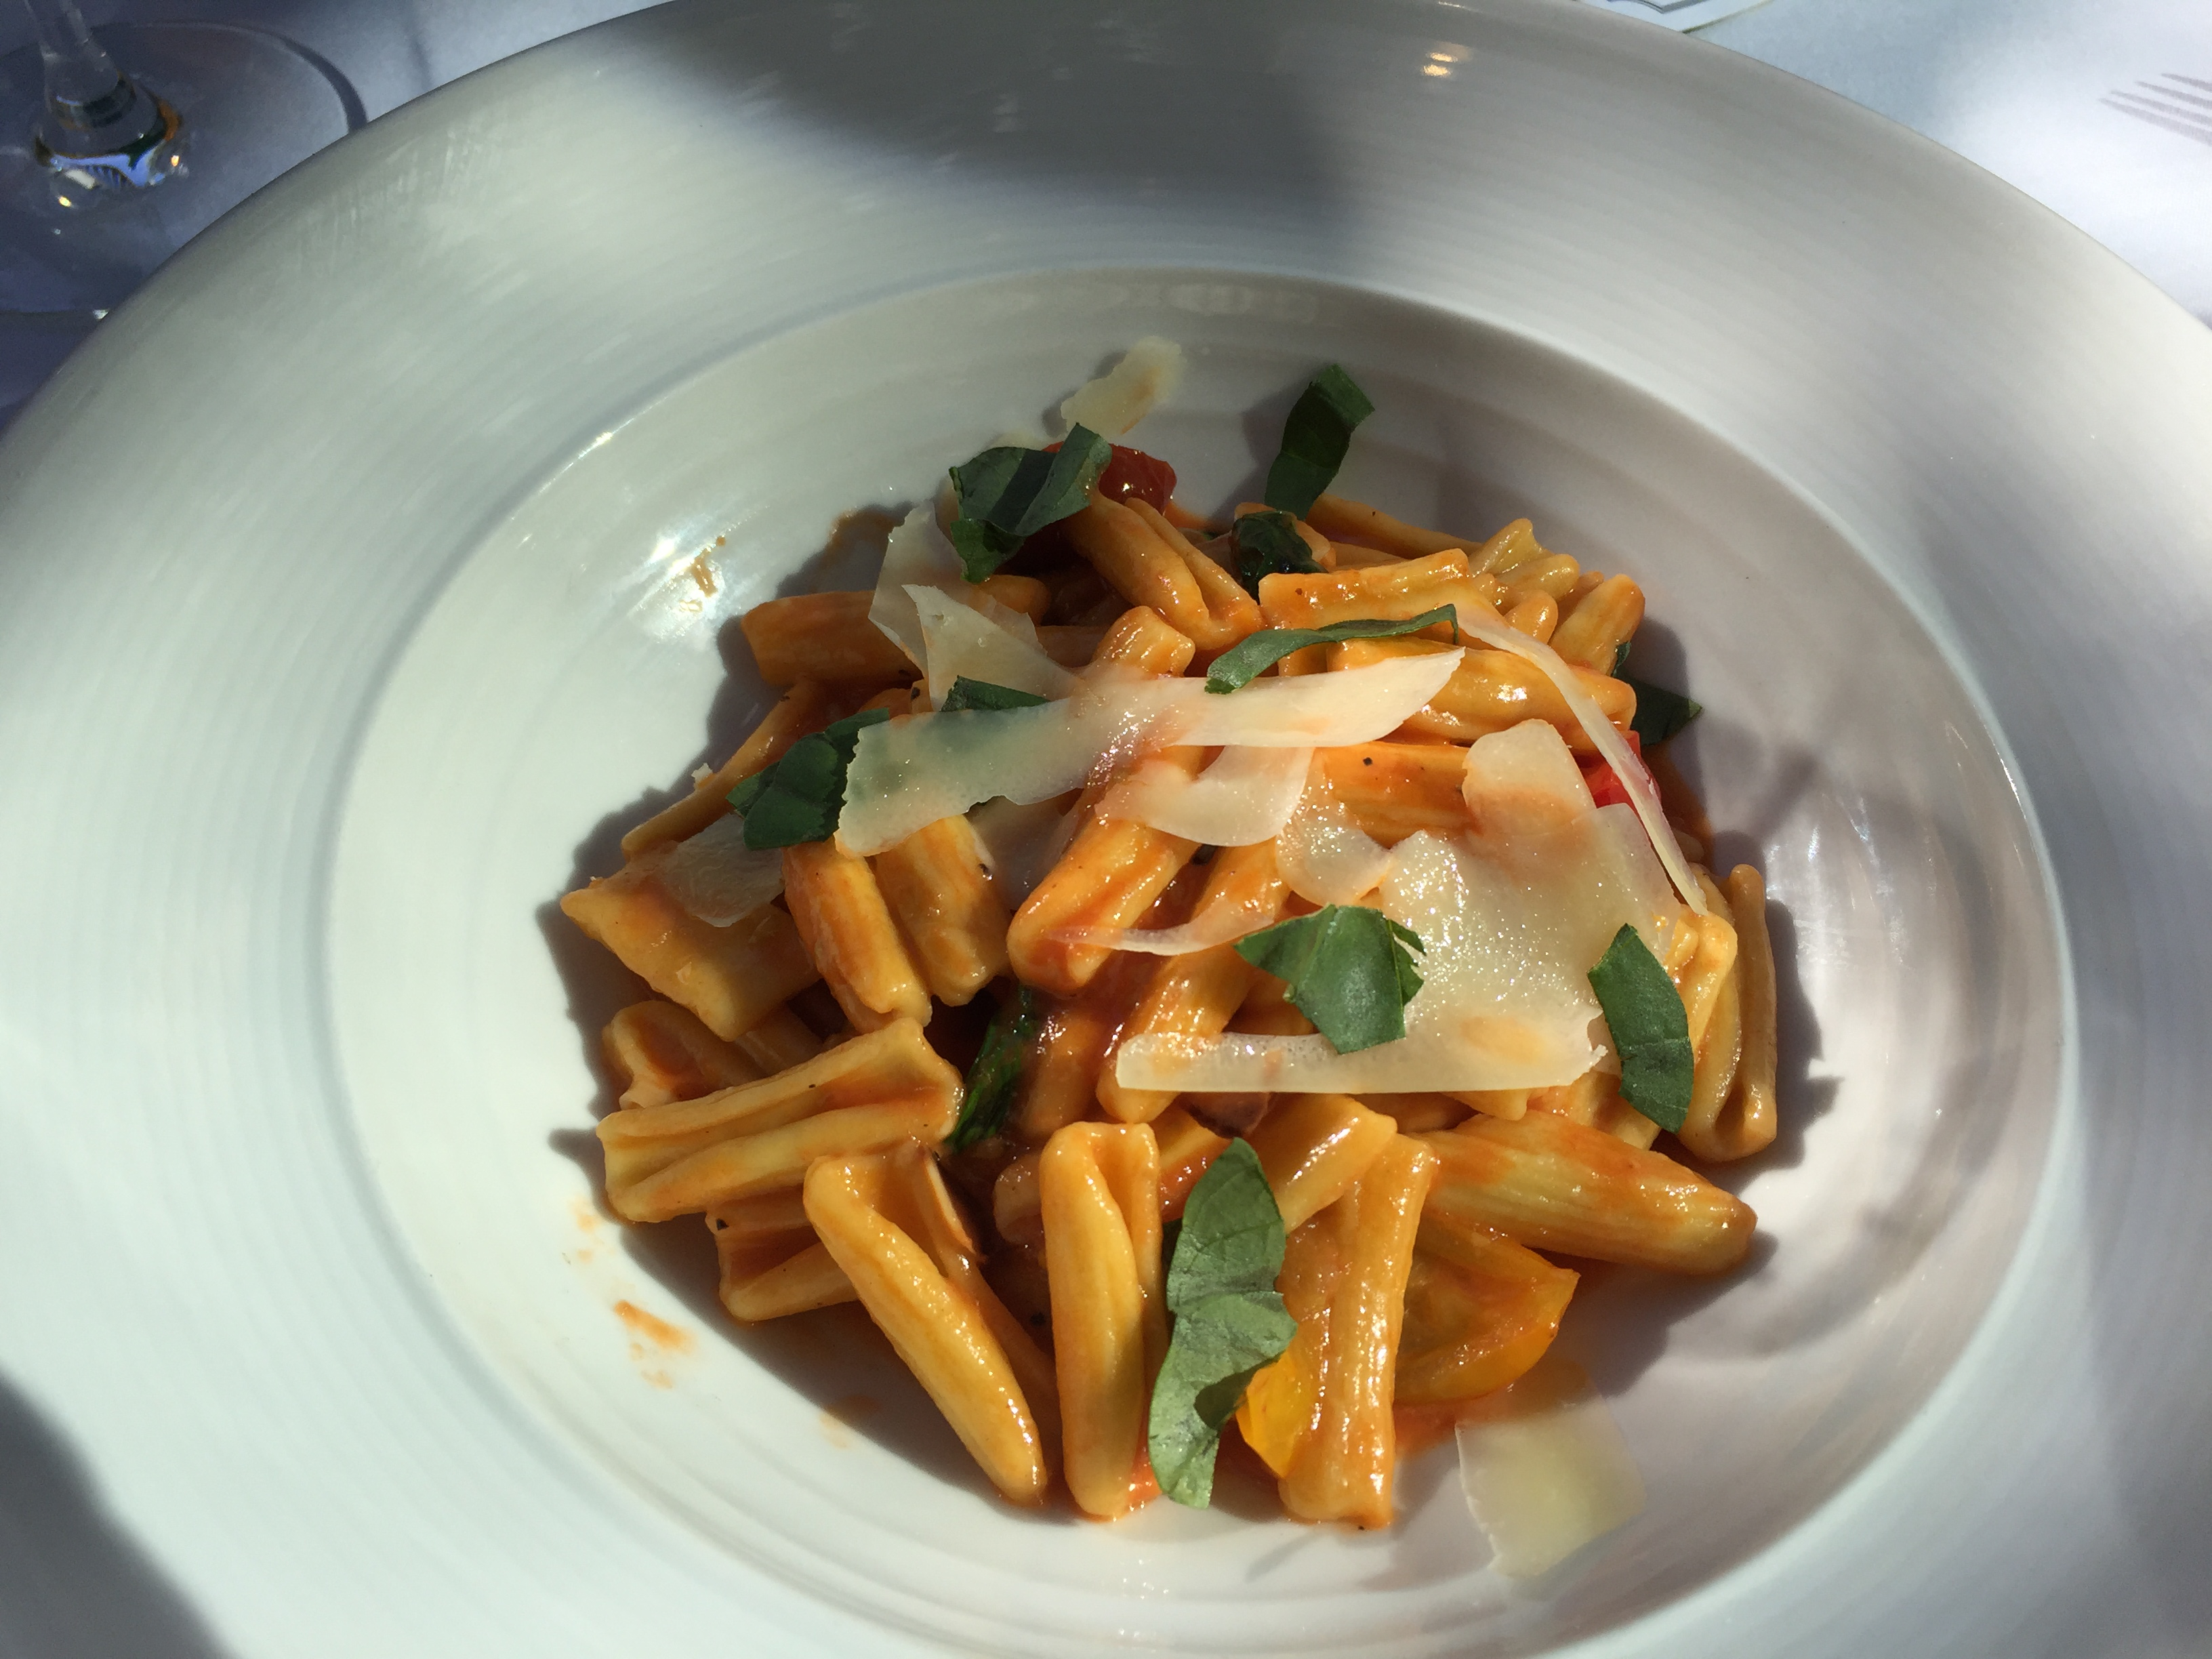 Andiron serves a lovely, simple pasta as well as some wildly inventive dishes in Summerlin, Nevada. - JIM BYERS PHOTO